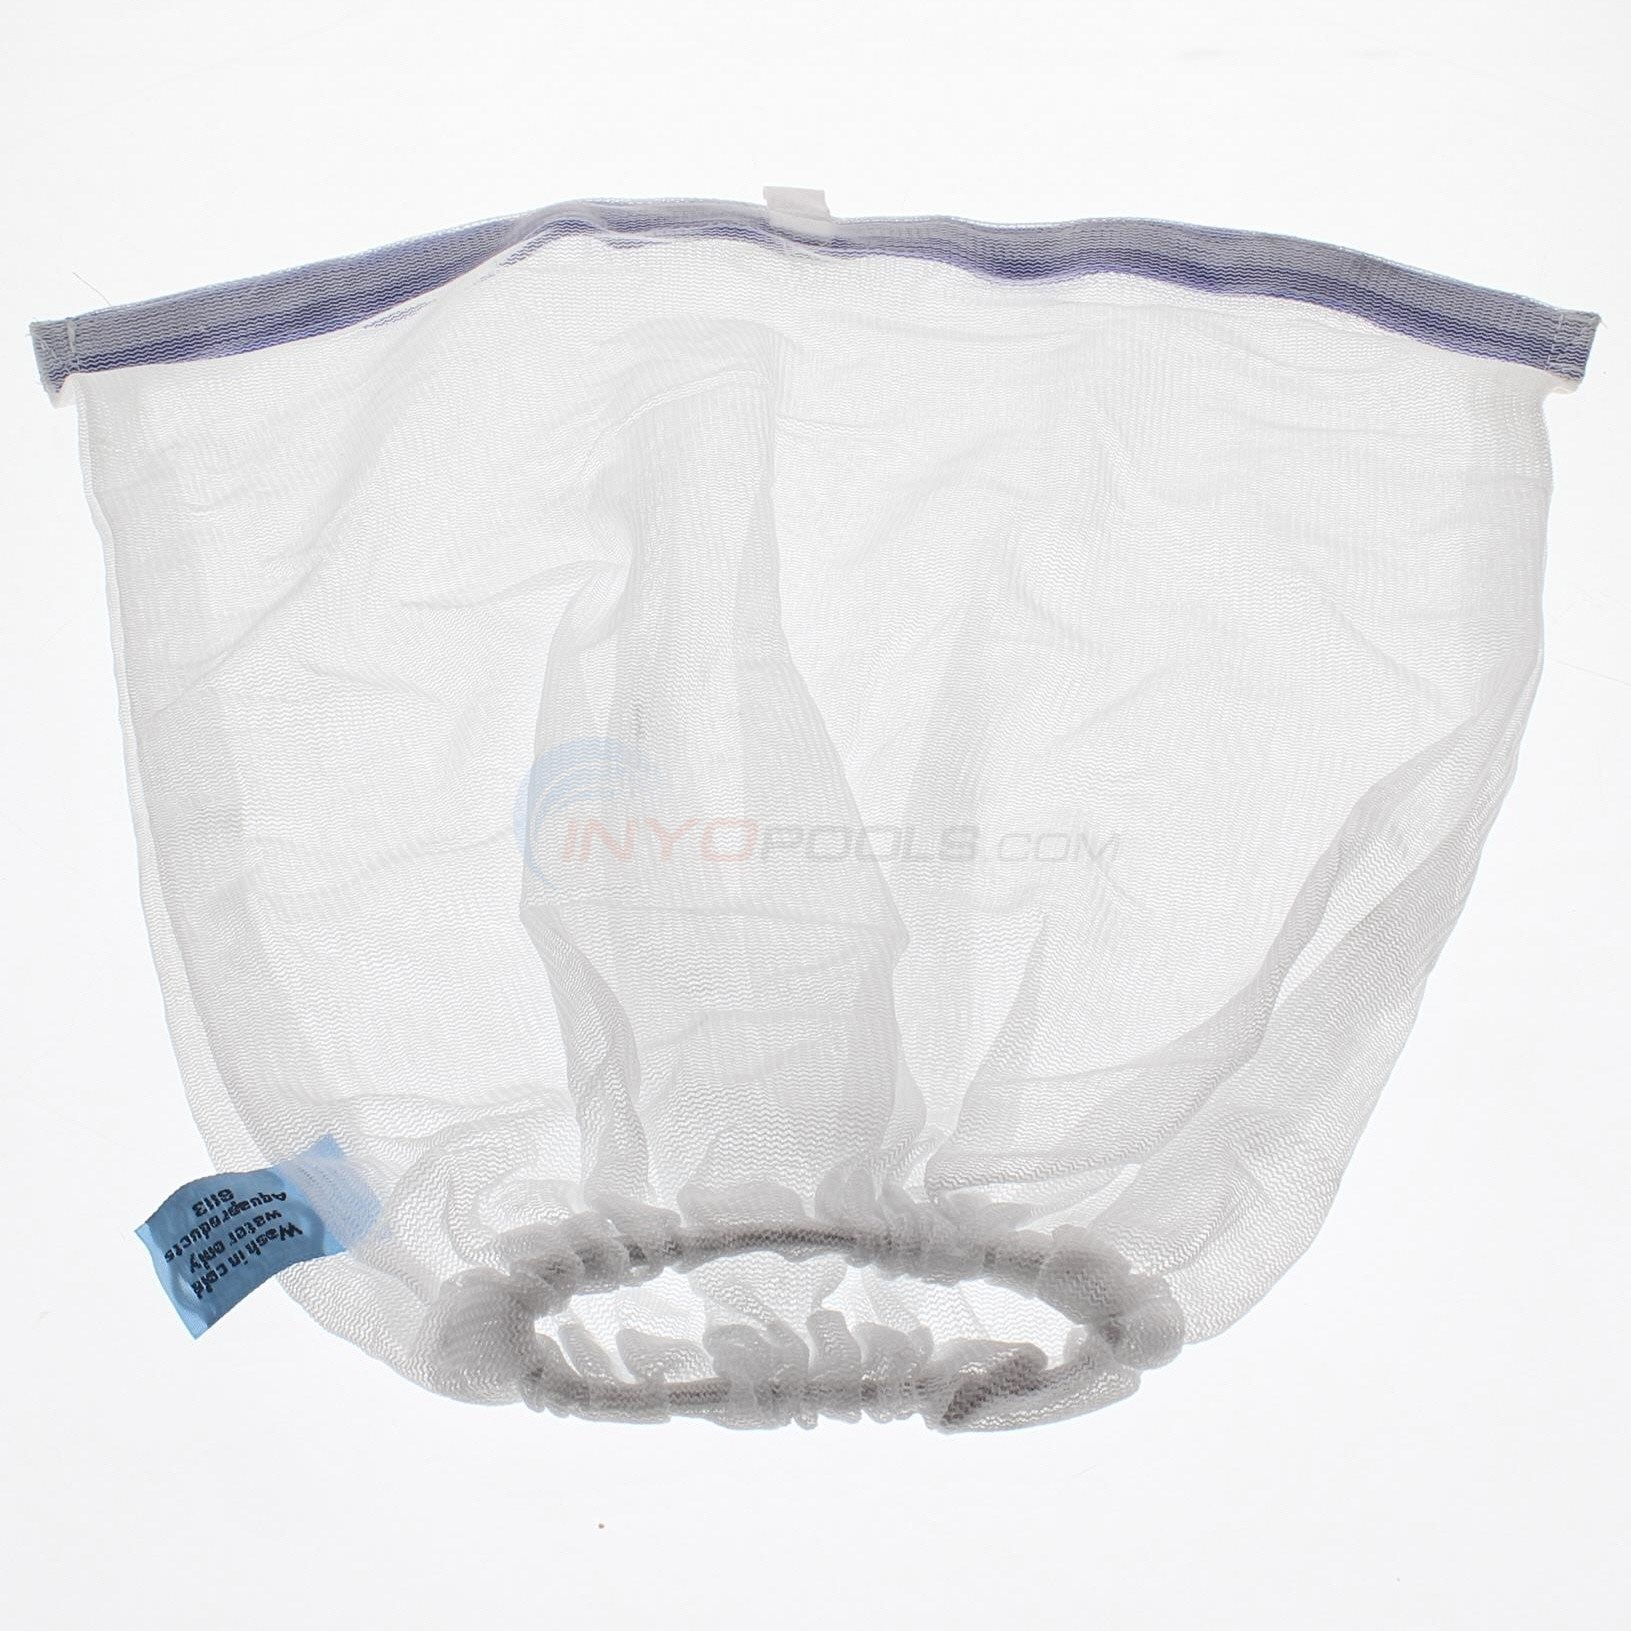 Filter Bag, Coarse Mesh, With Elastic